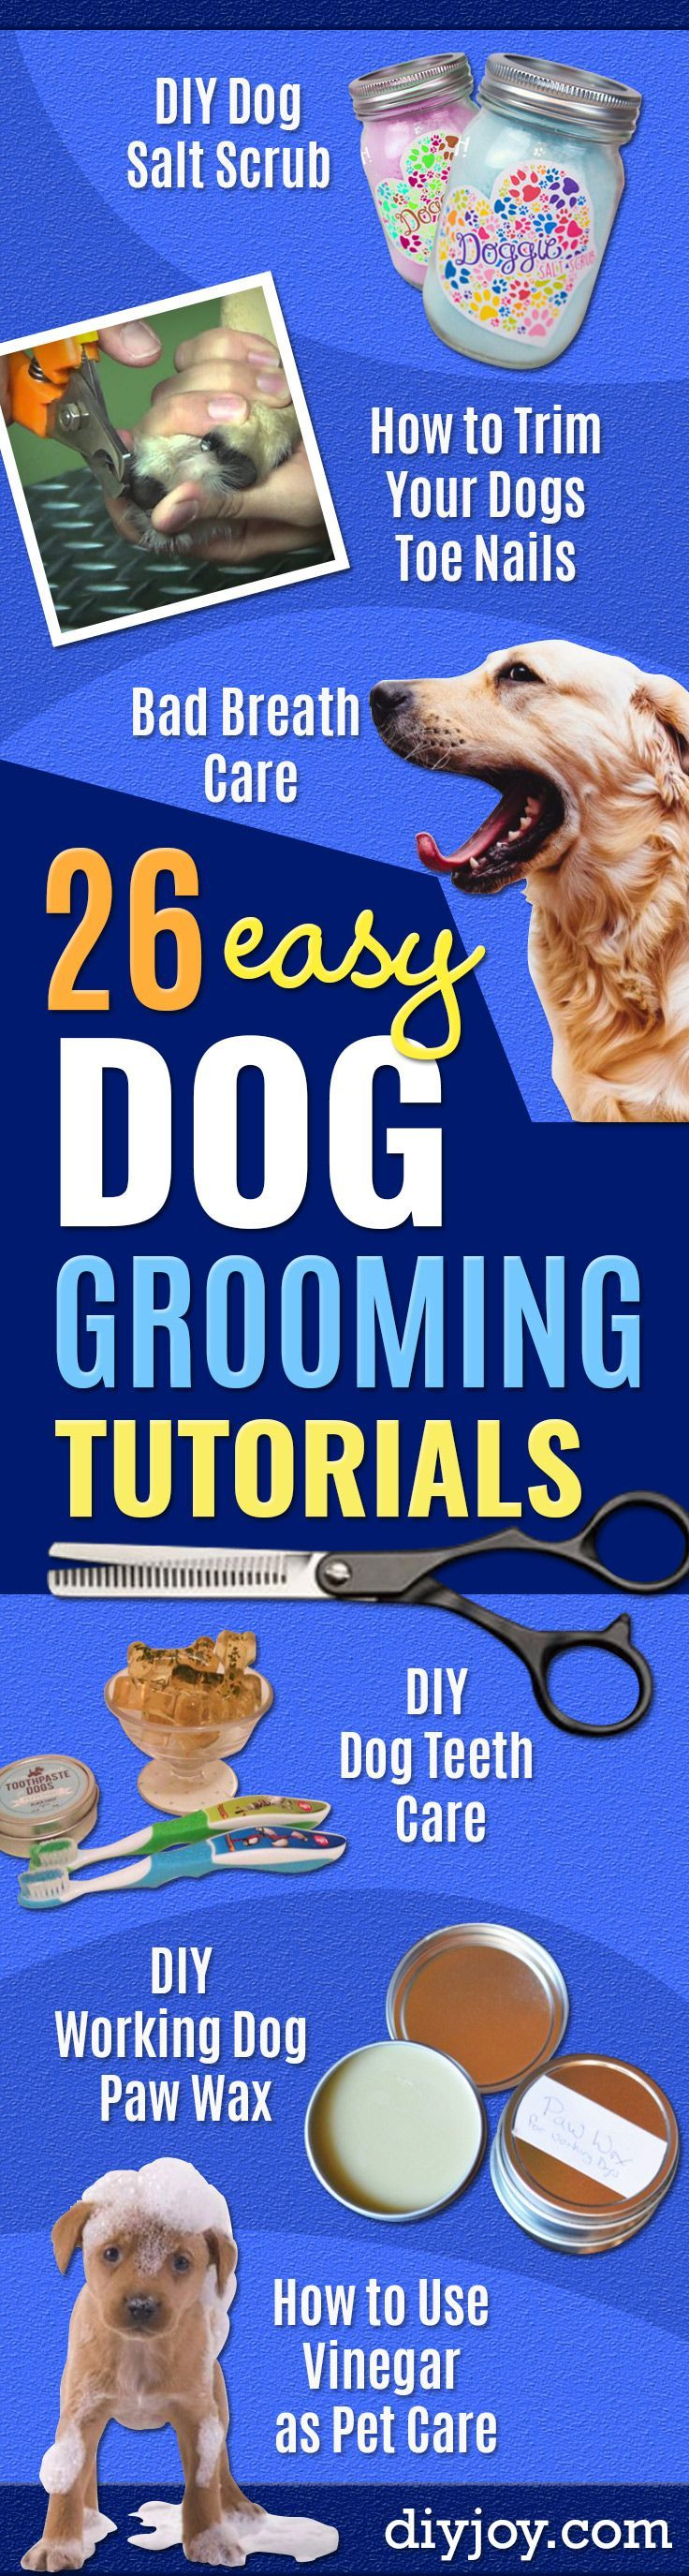 DIY Dog Grooming Tutorials - Cool and Easy Ways to Wash, Groom and Style Your Pets Fur - Trim Toenails, Brush Teeth, Bath, Trim and Clip Dogs Fur - Hair - Remove Fleas and Anti Itch - Save Money At Th